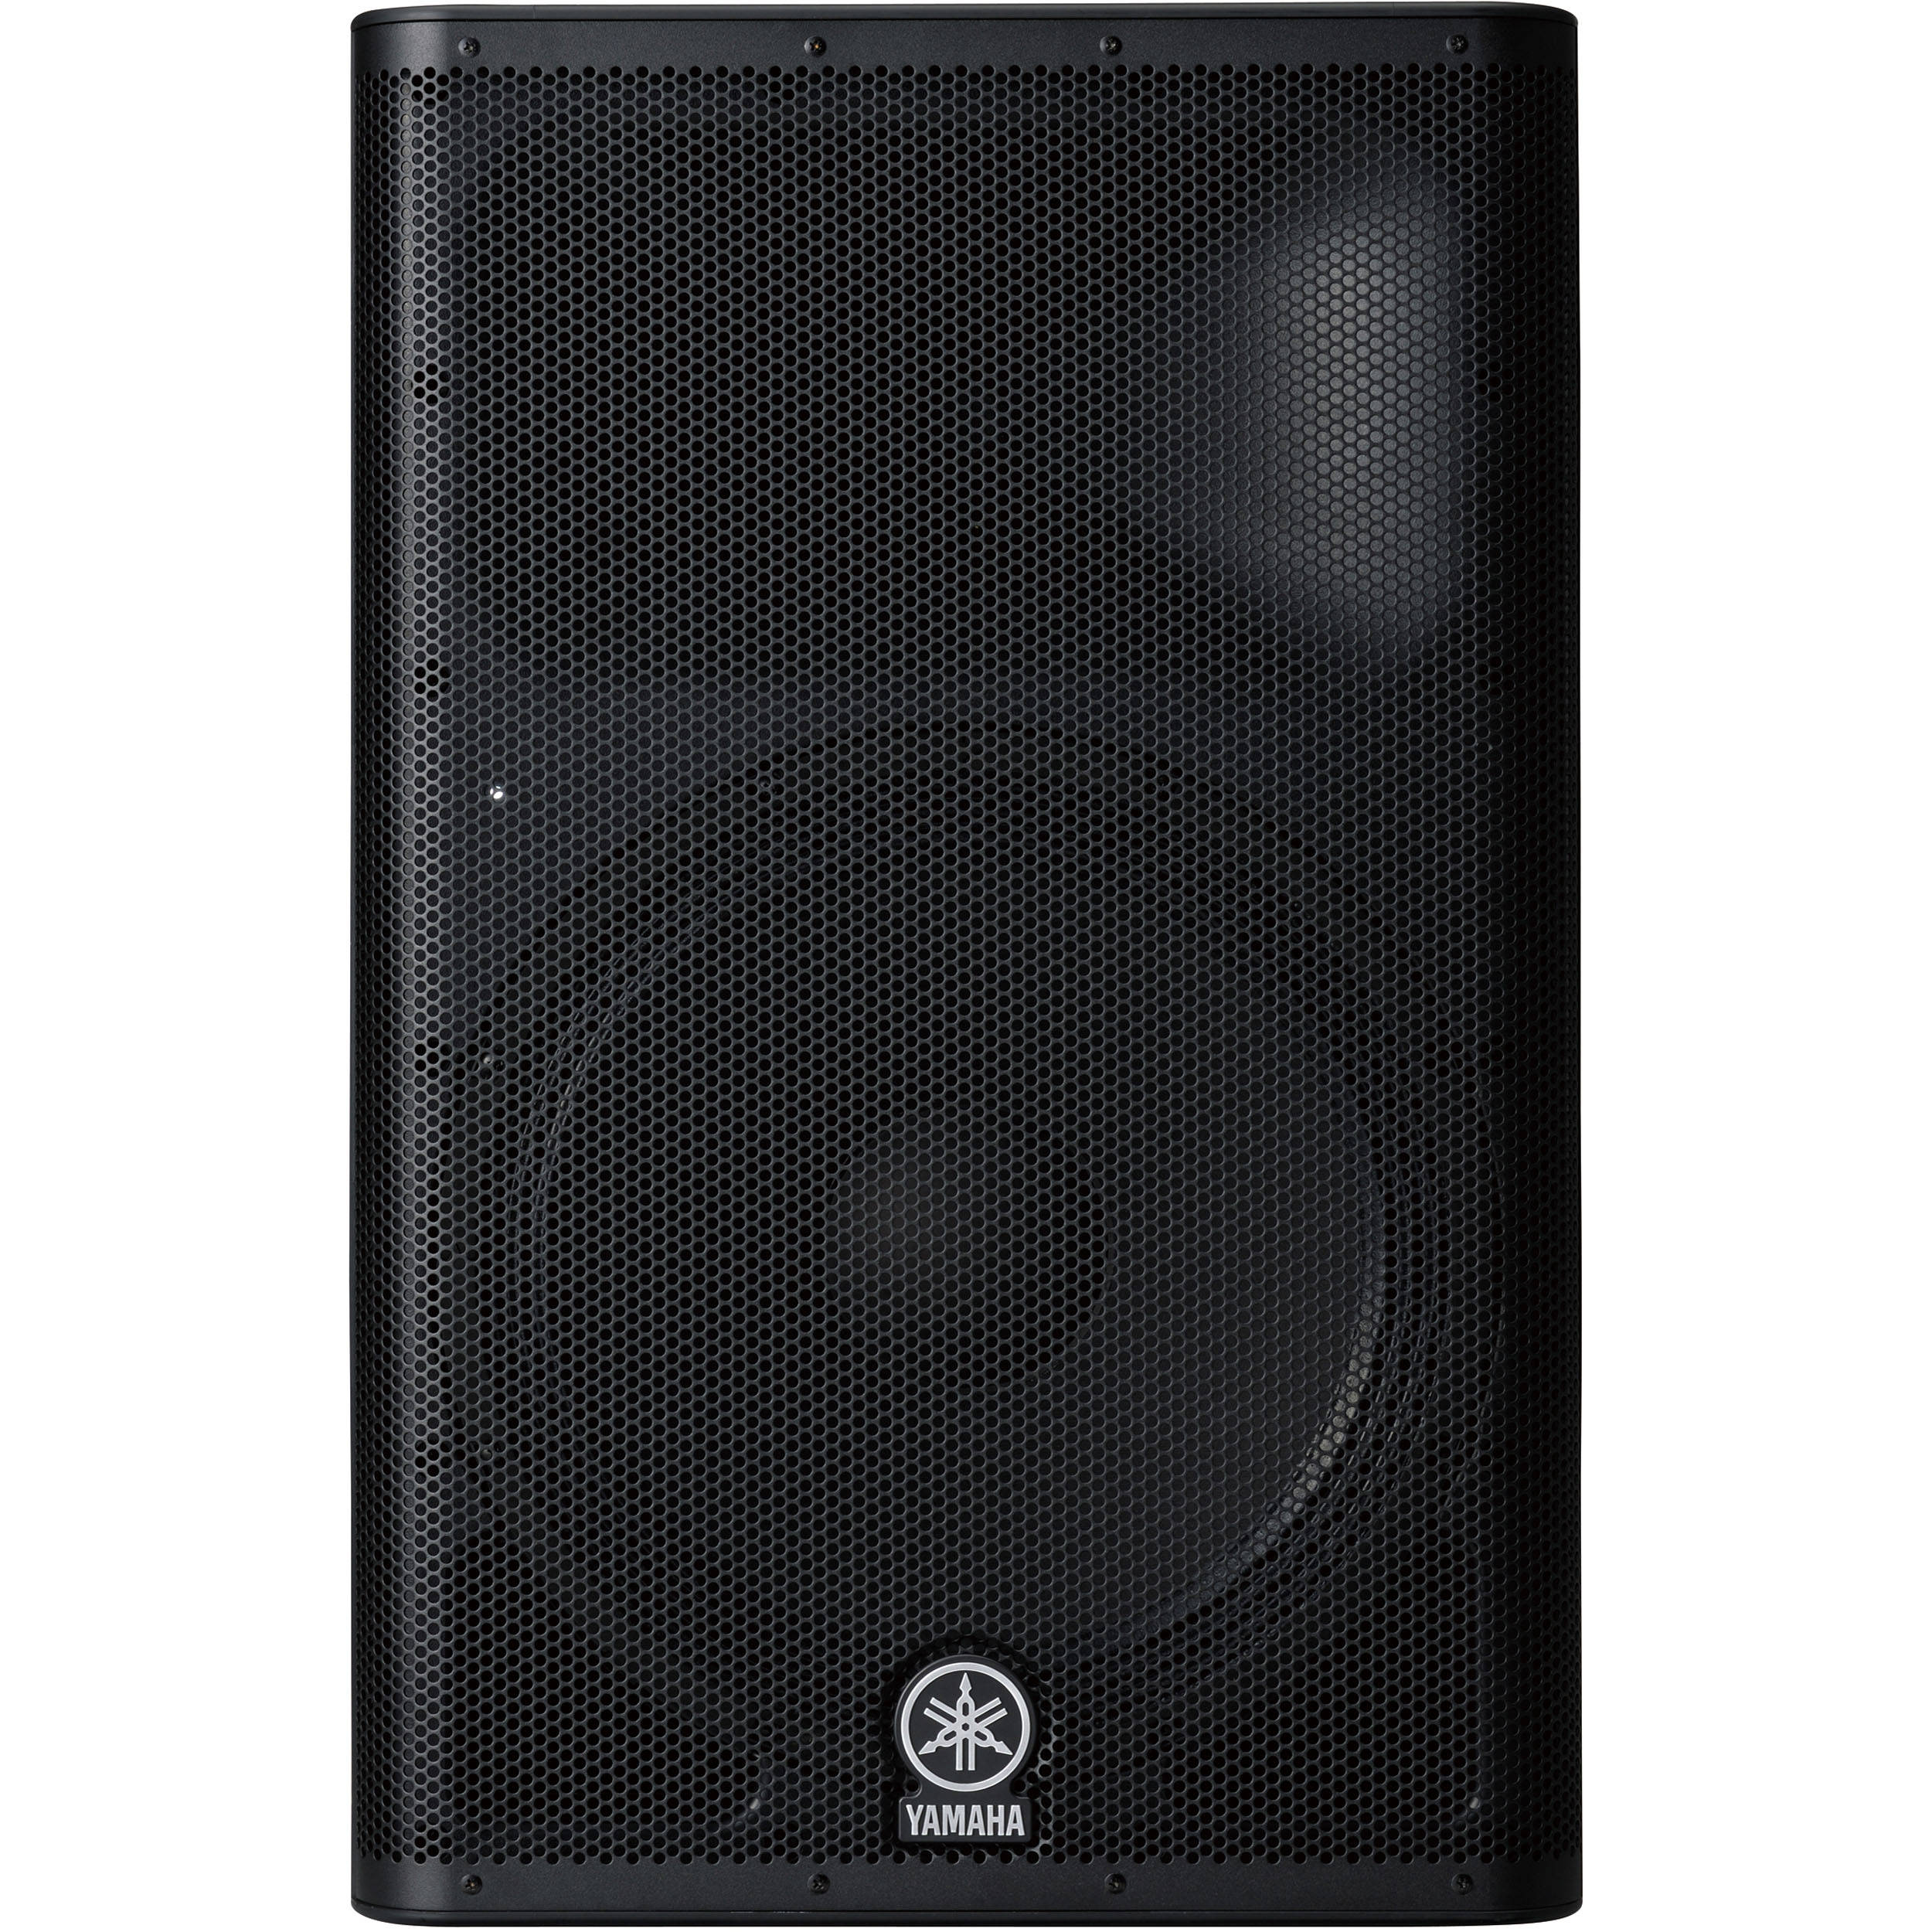 Yamaha Dxr15 15 1100w 2 Way Active Loudspeaker Bh Two Crossover With Linear Phase Response